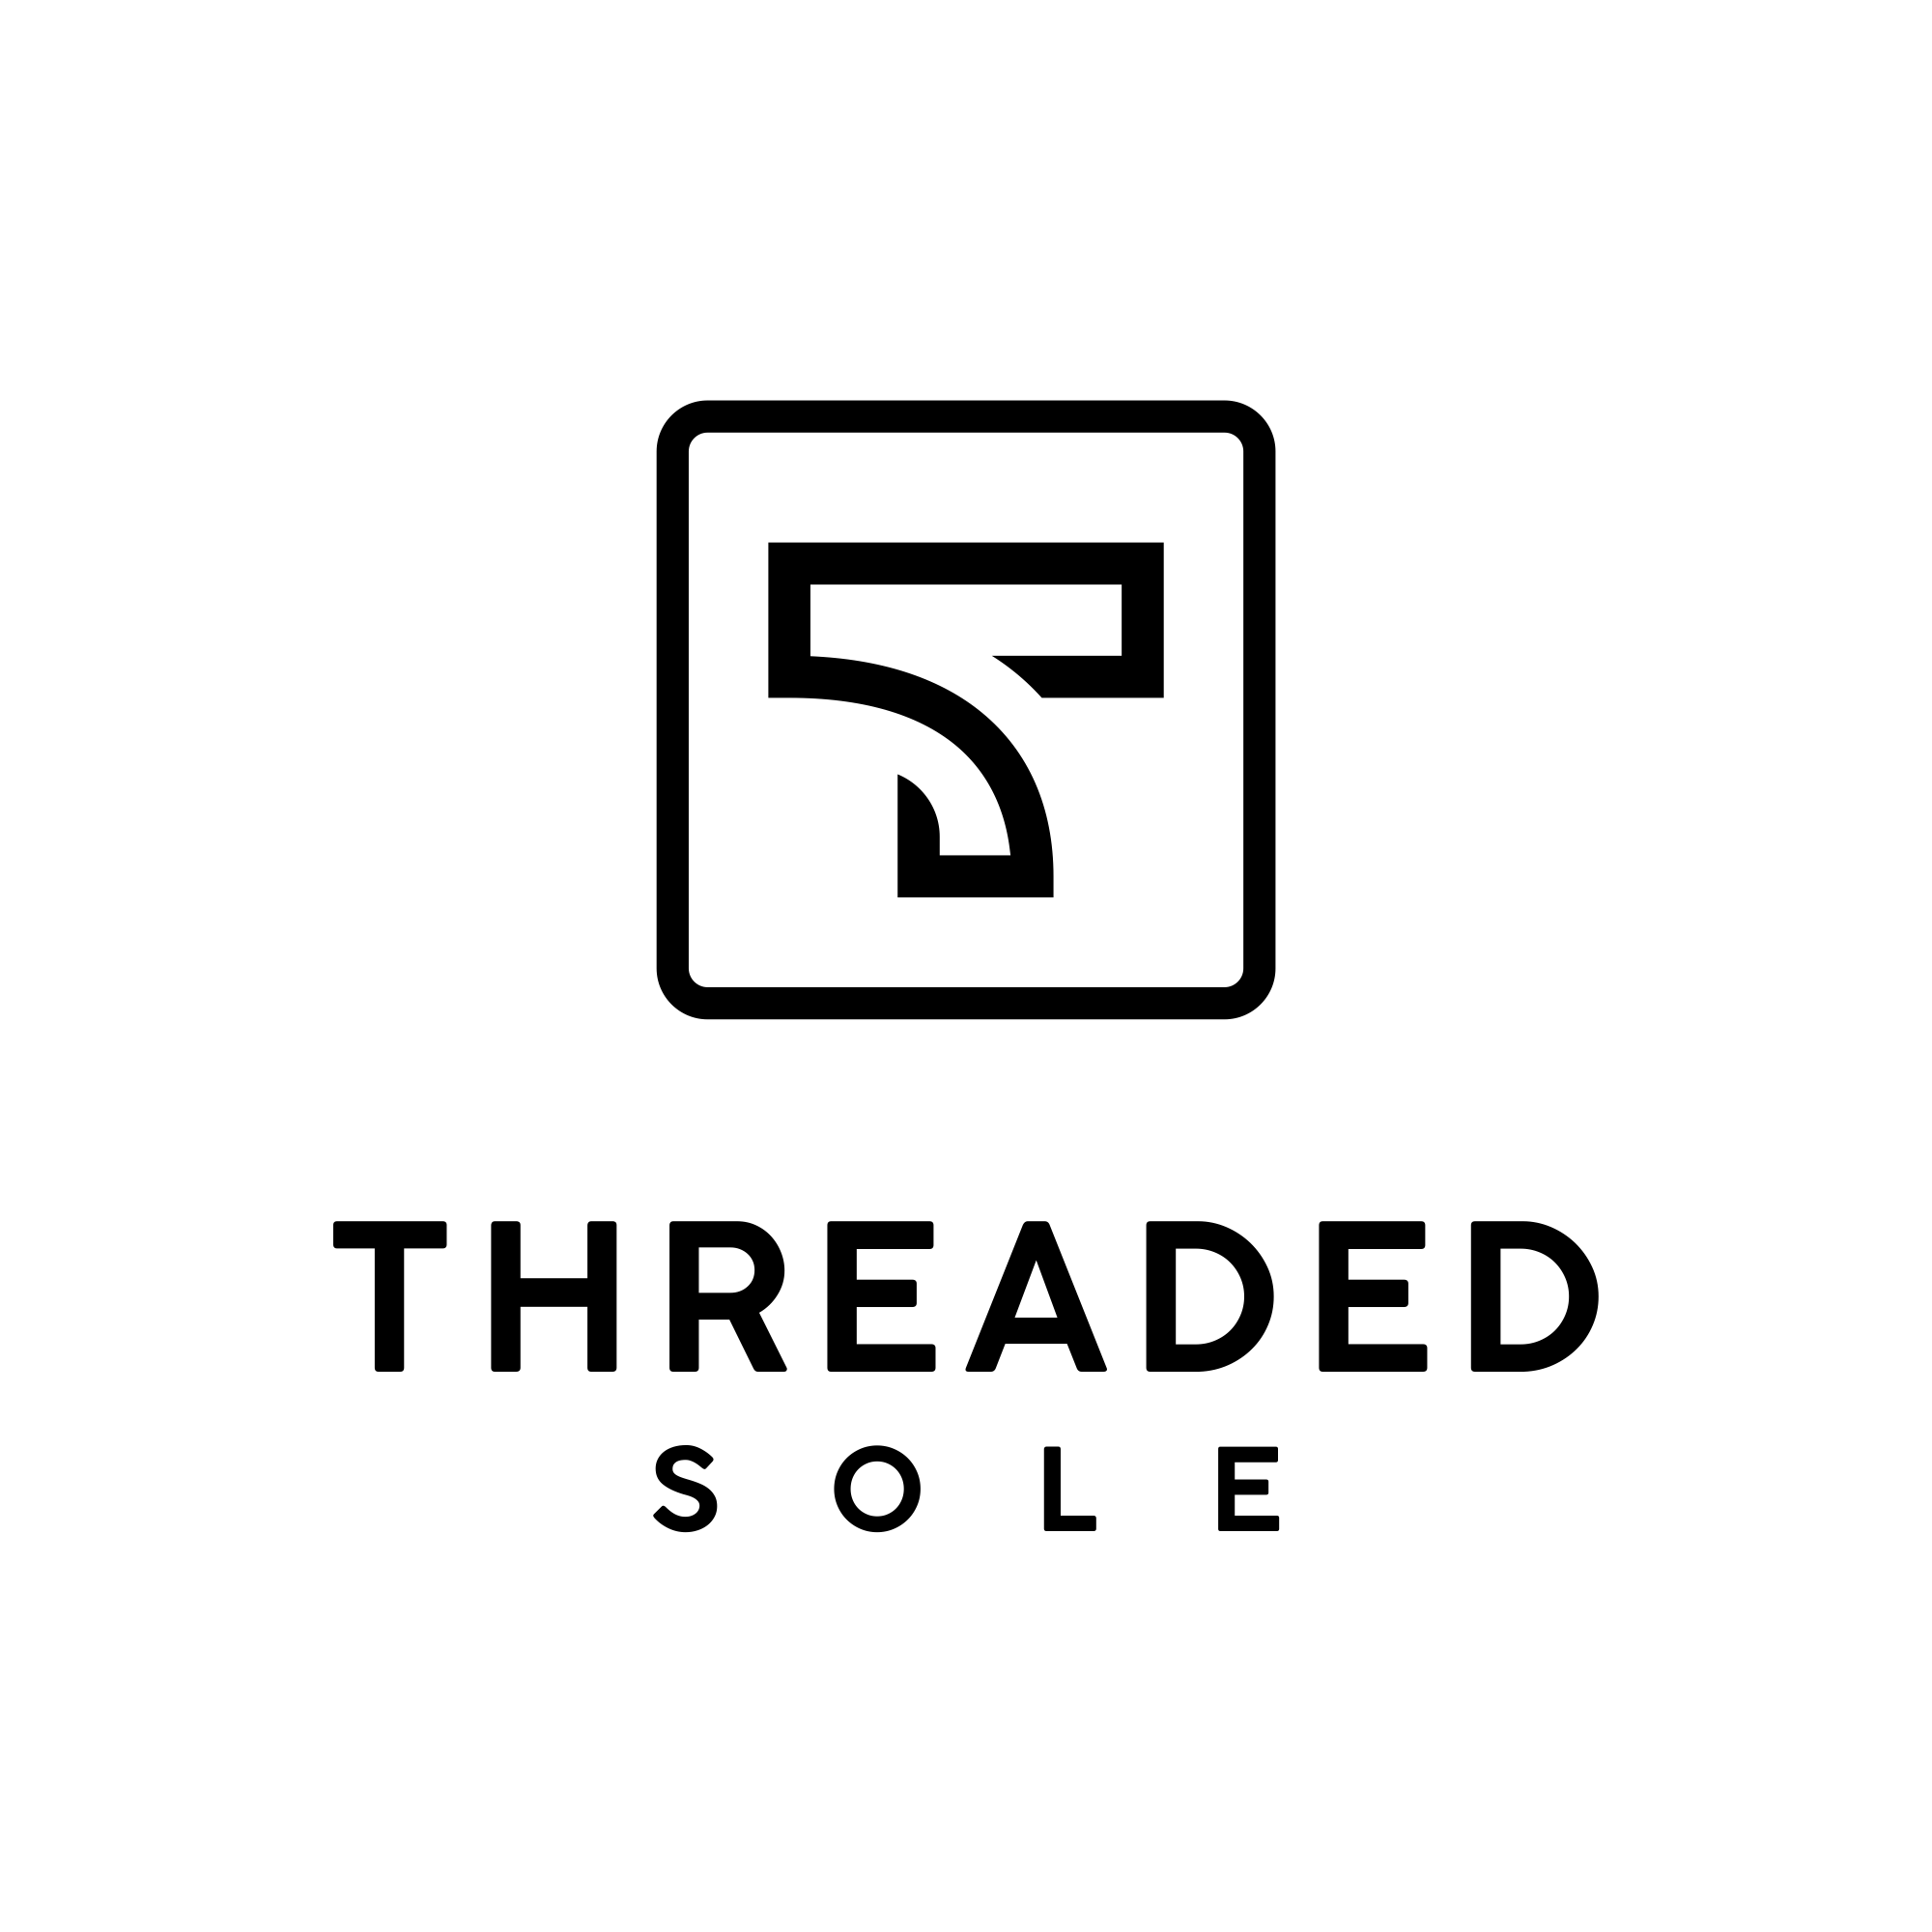 [Still looking for new styles!] Threaded Sole is a fun online sock store that is looking for a creative logo!